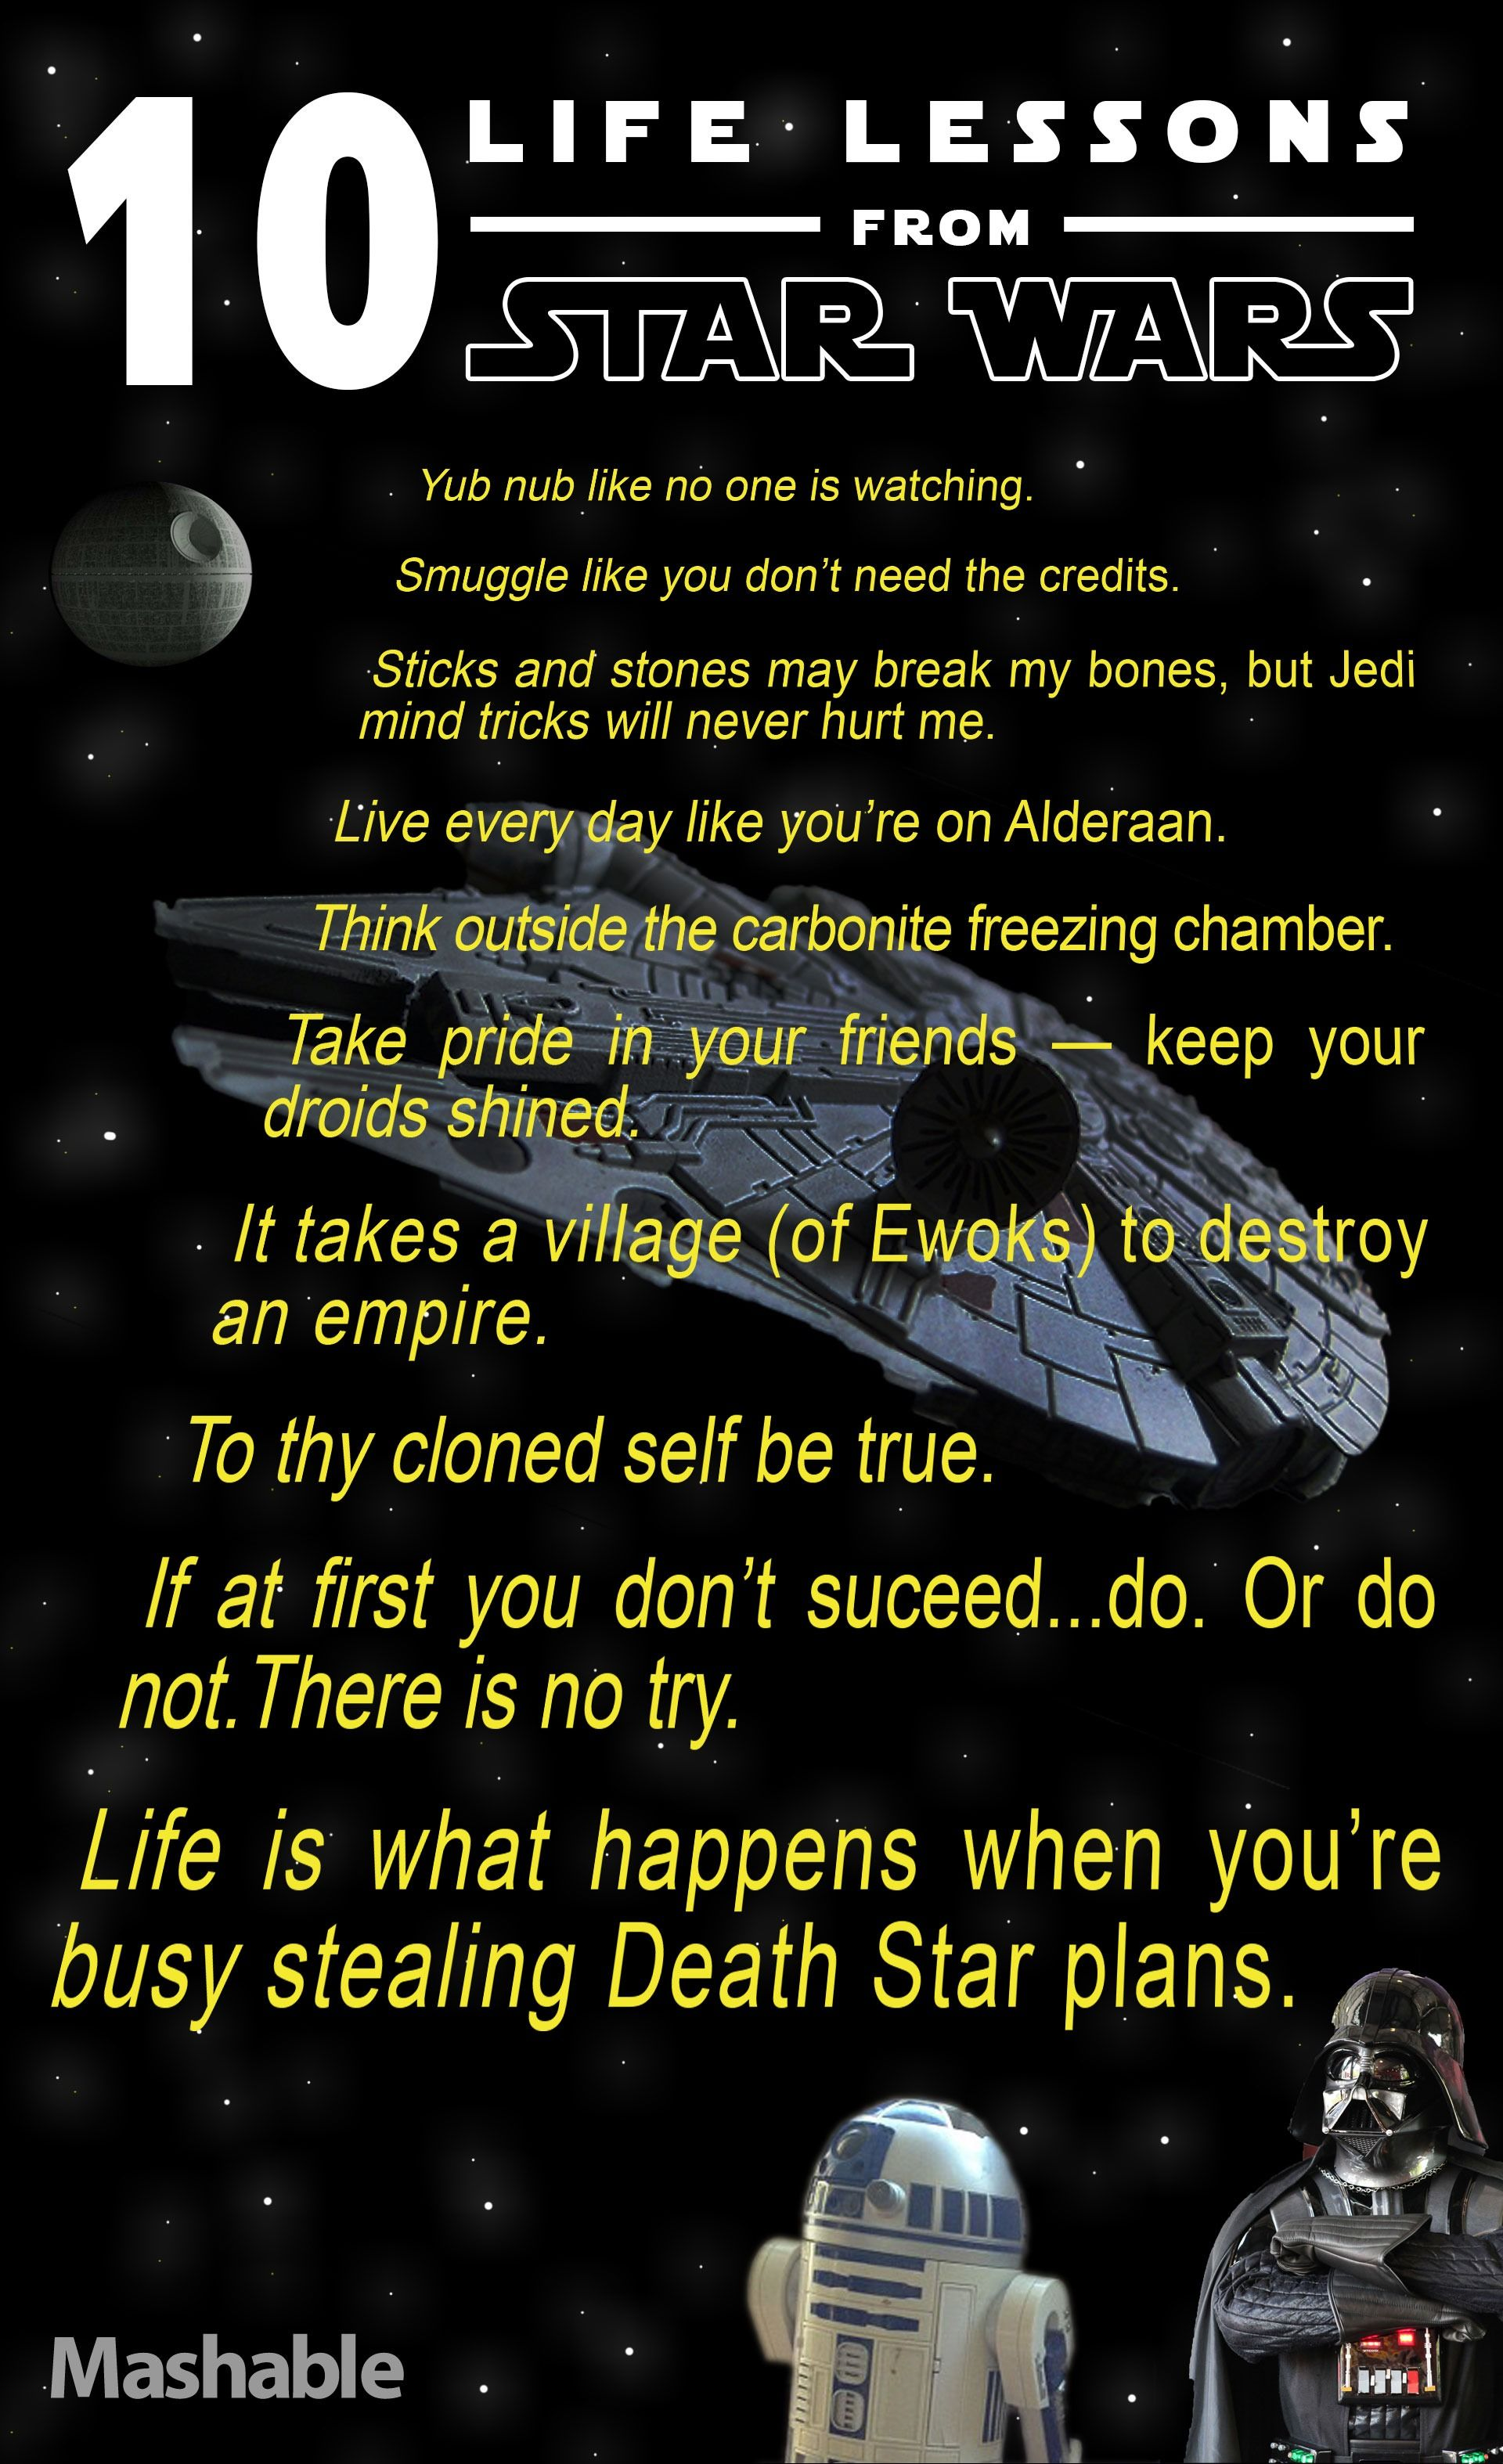 Funny Quotes About Life Lessons 10 Life Lessons From Star Wars  Life Lessons Learned Life